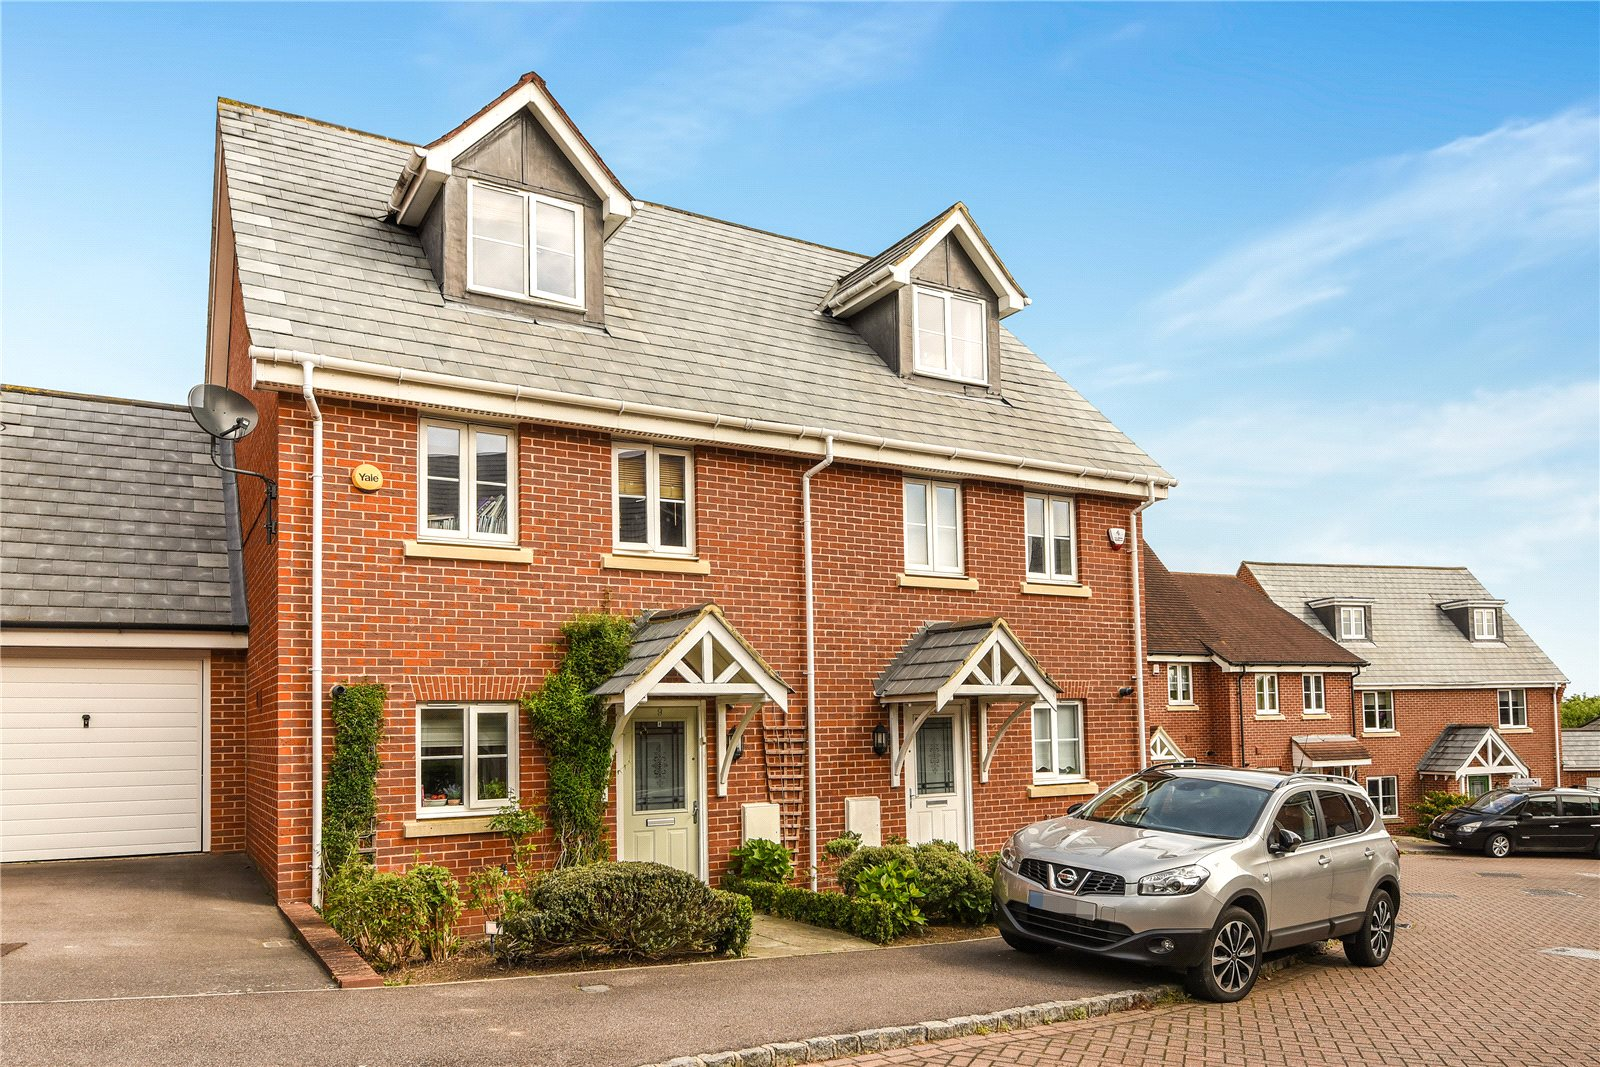 3 Bedrooms Town House for rent in Ducketts Mead, Shinfield, Reading, Berkshire, RG2